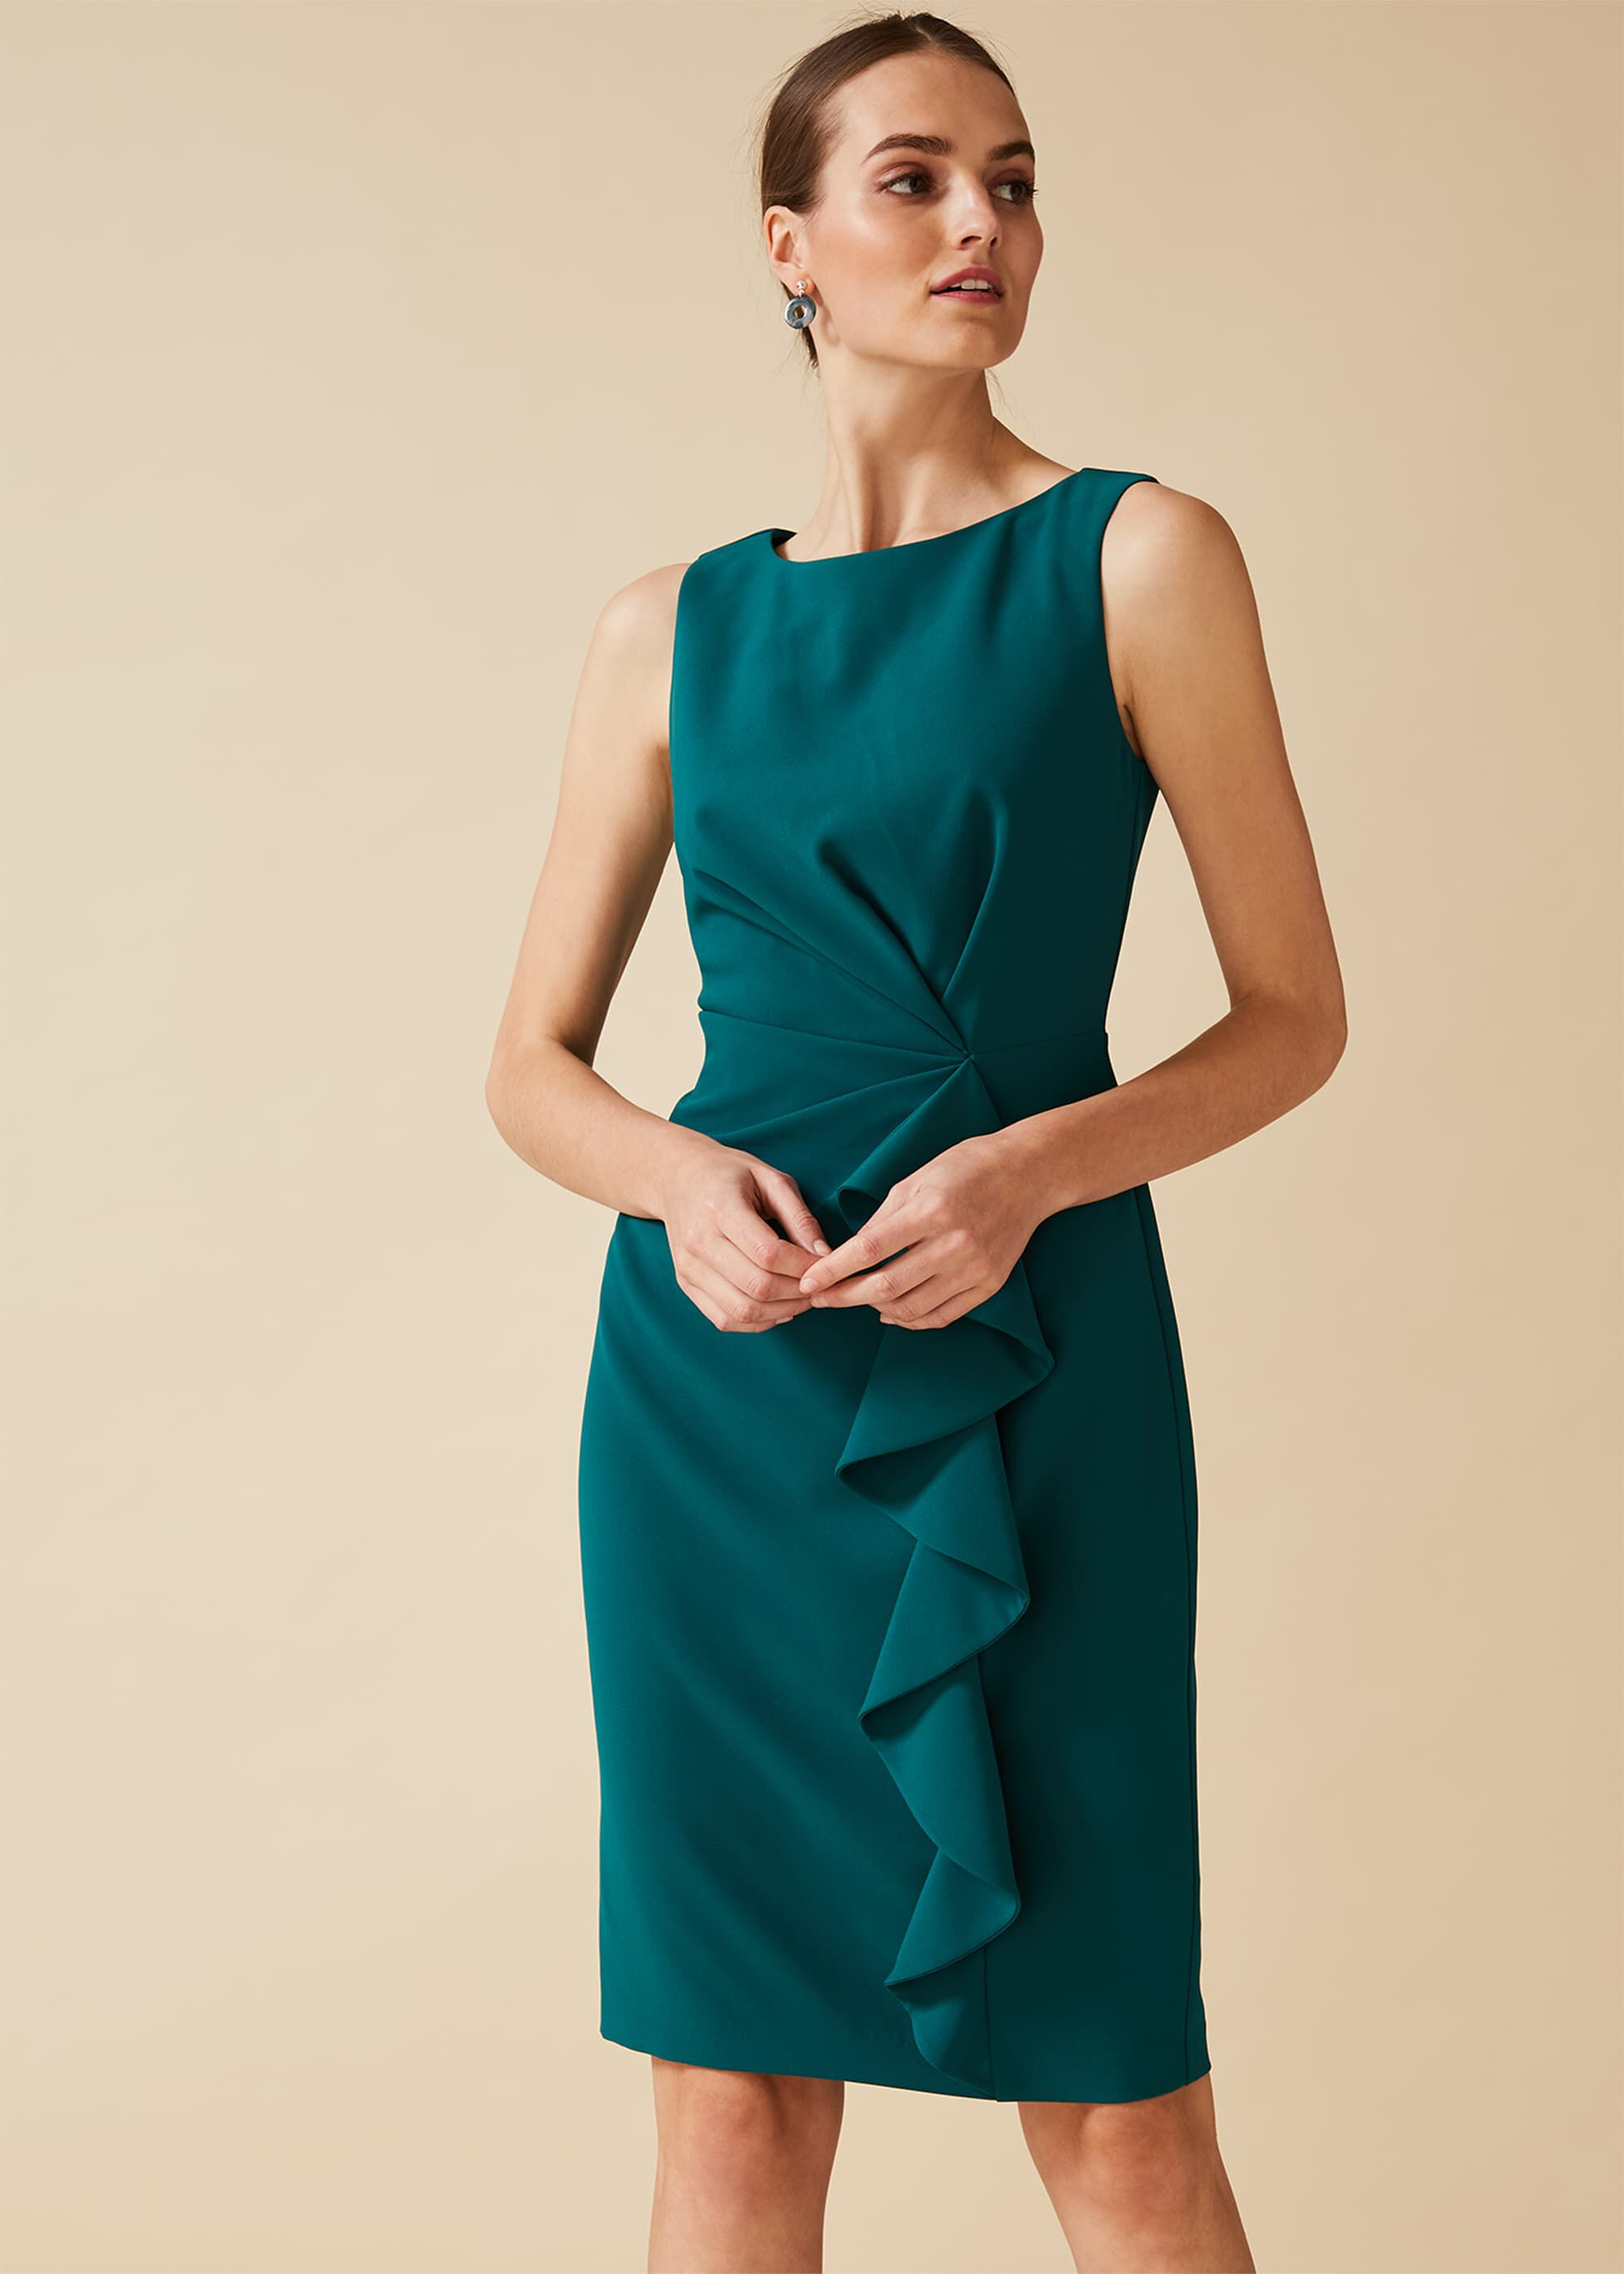 Phase Eight Gia Frill Dress, Green, Shift, Occasion Dress